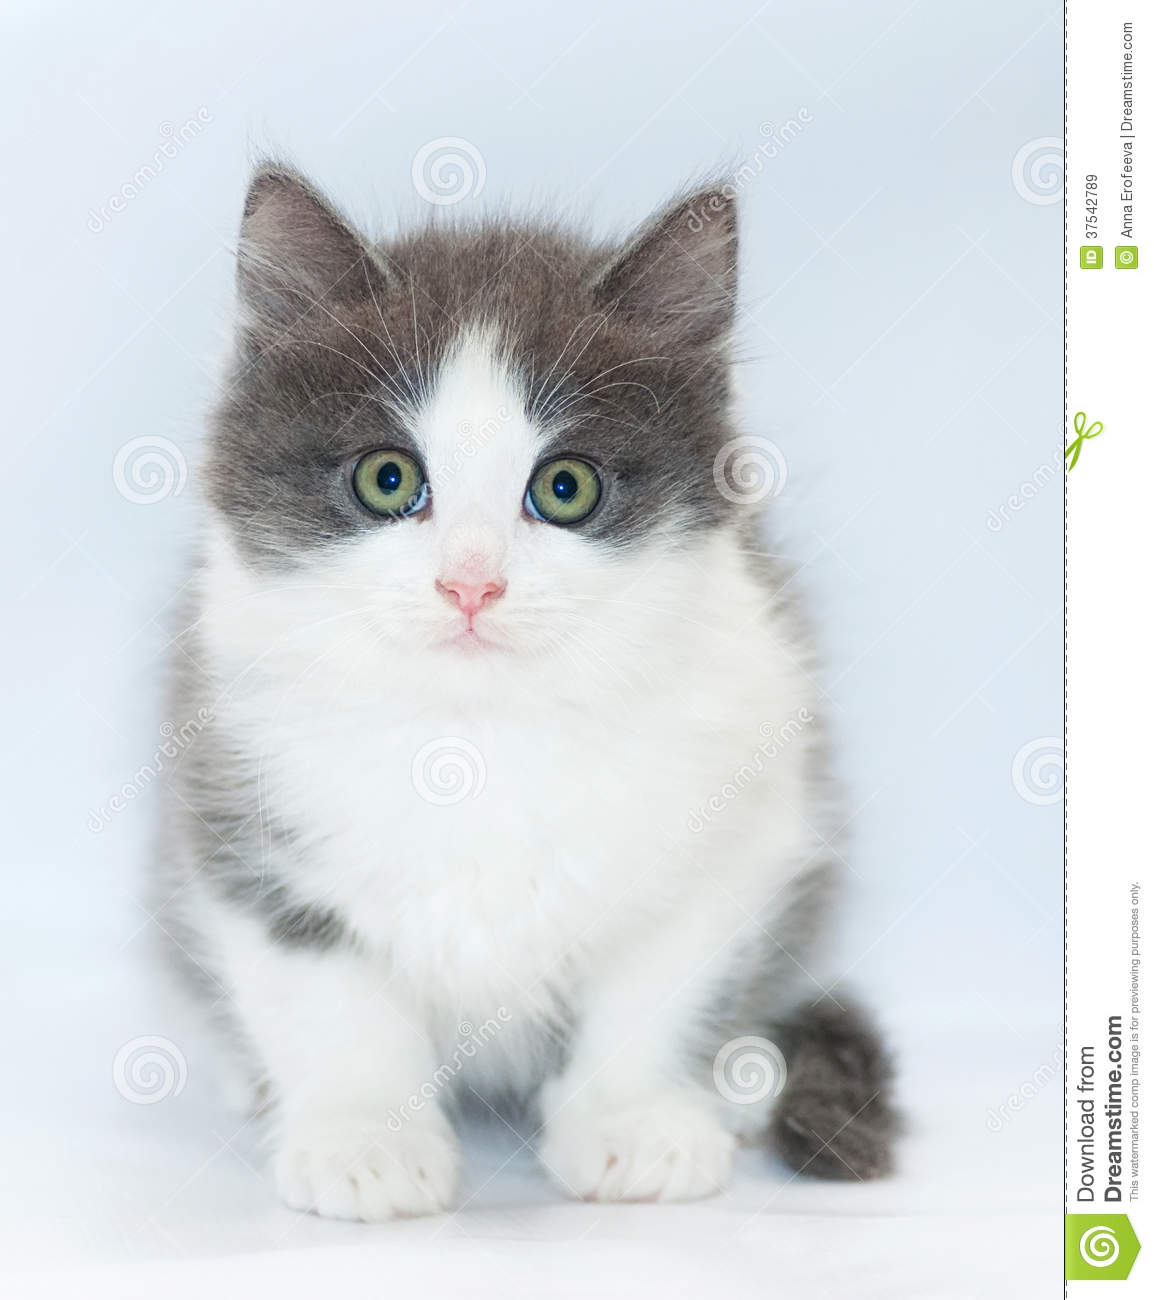 The Lost Kittens - Warrior Cats Online Gray And White Cat With Green Eyes